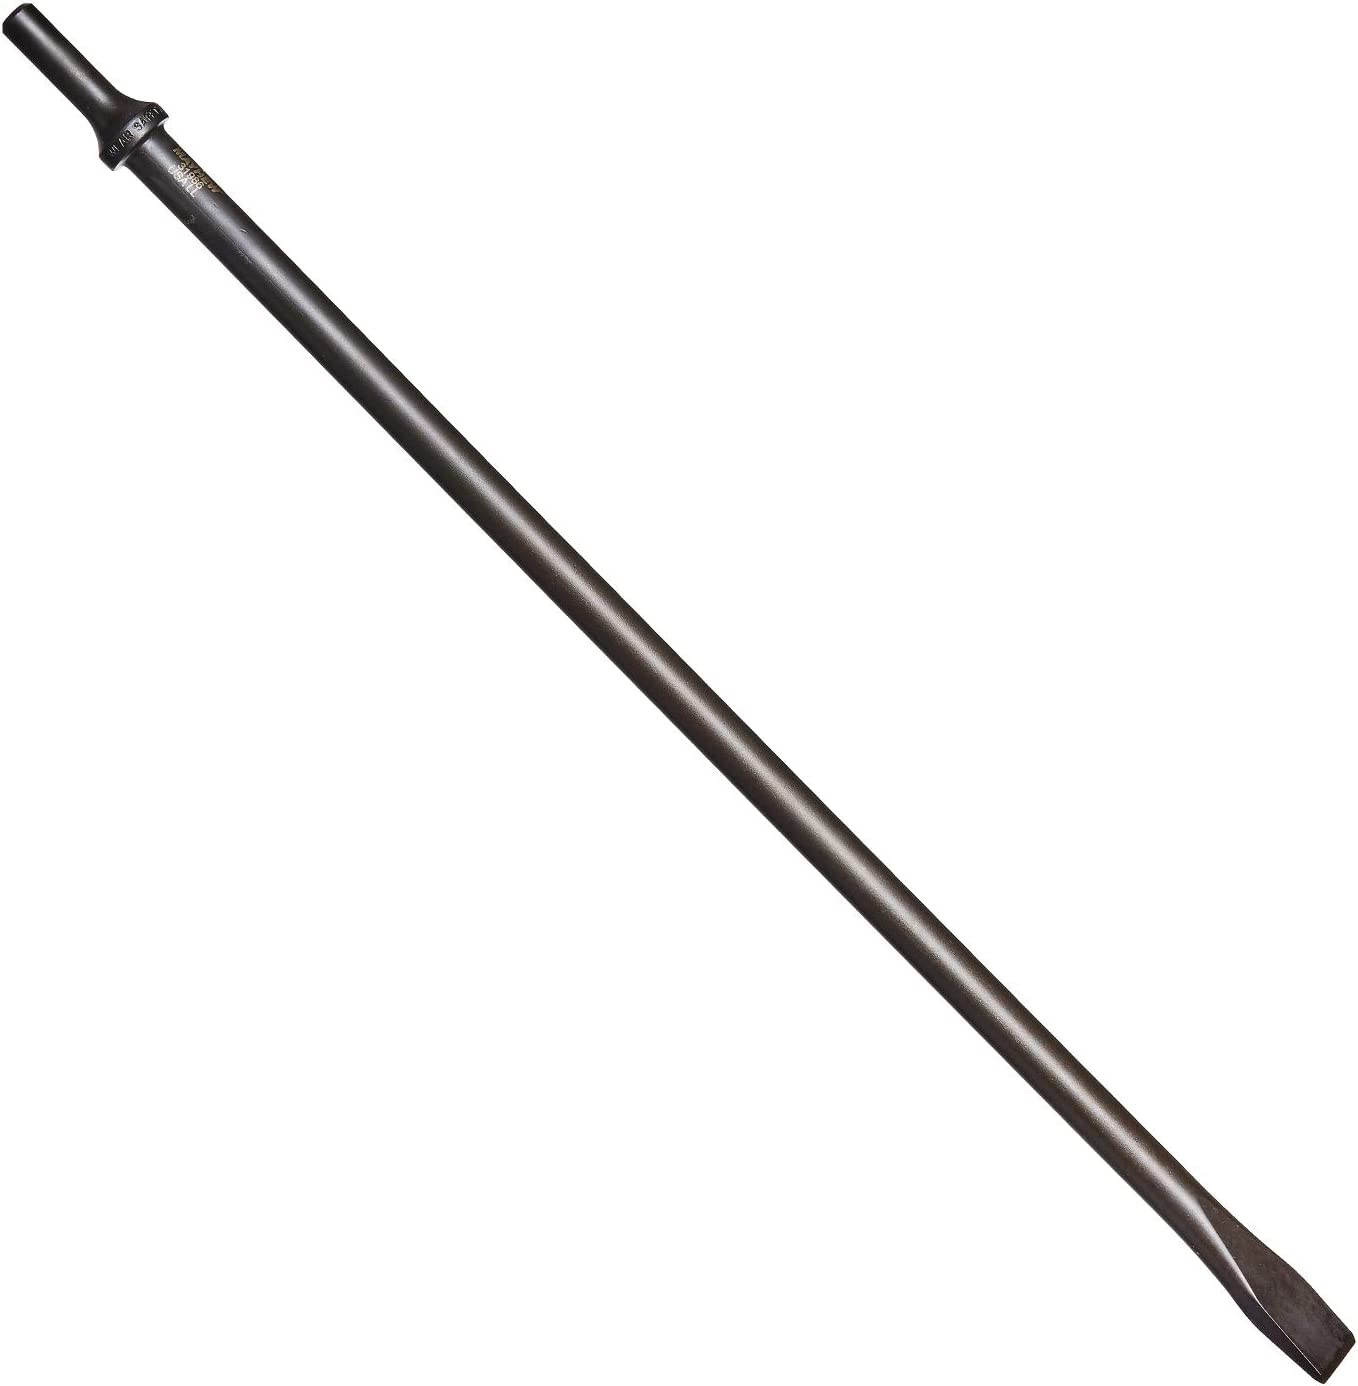 Mayhew Pro 31986 18-Inch Don't miss the campaign Pneumatic Cold Chisel supreme